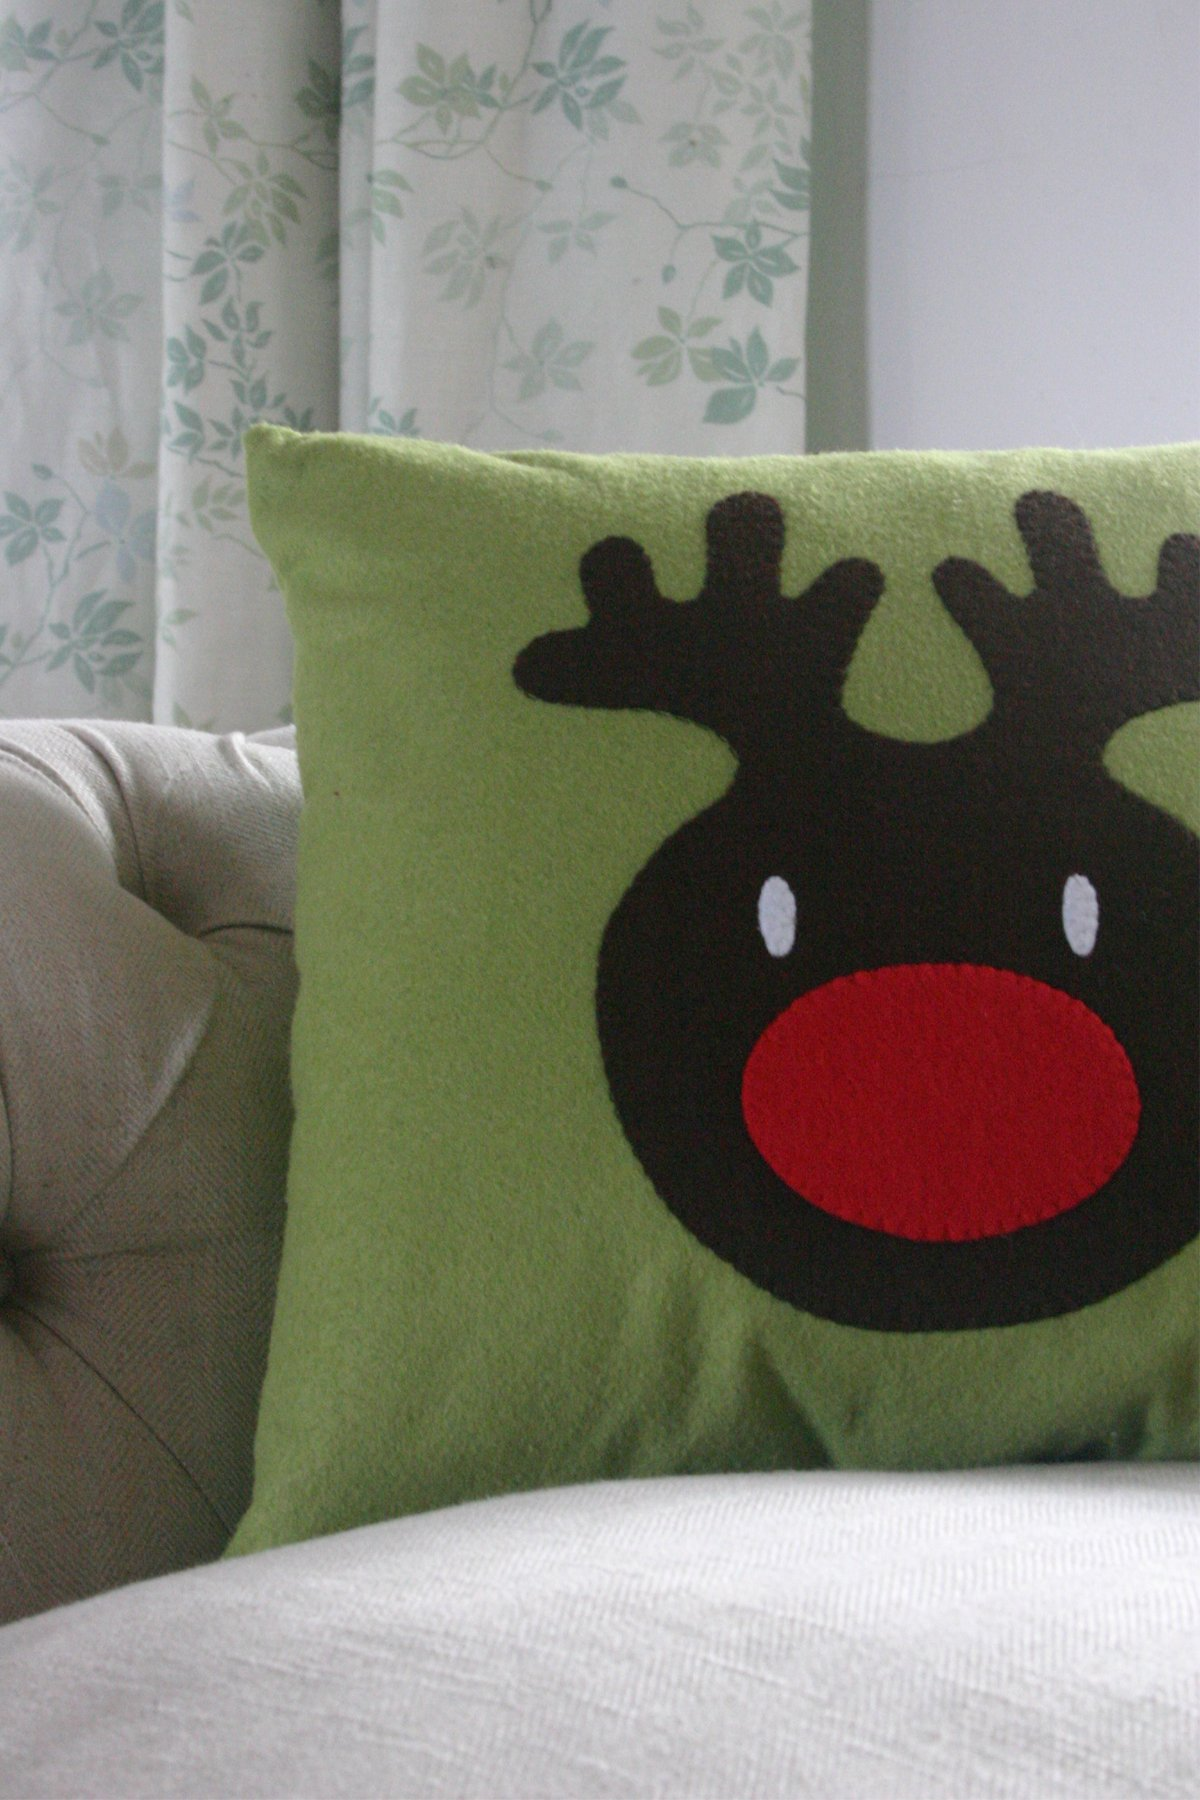 Reindeer Cushion on a sofa